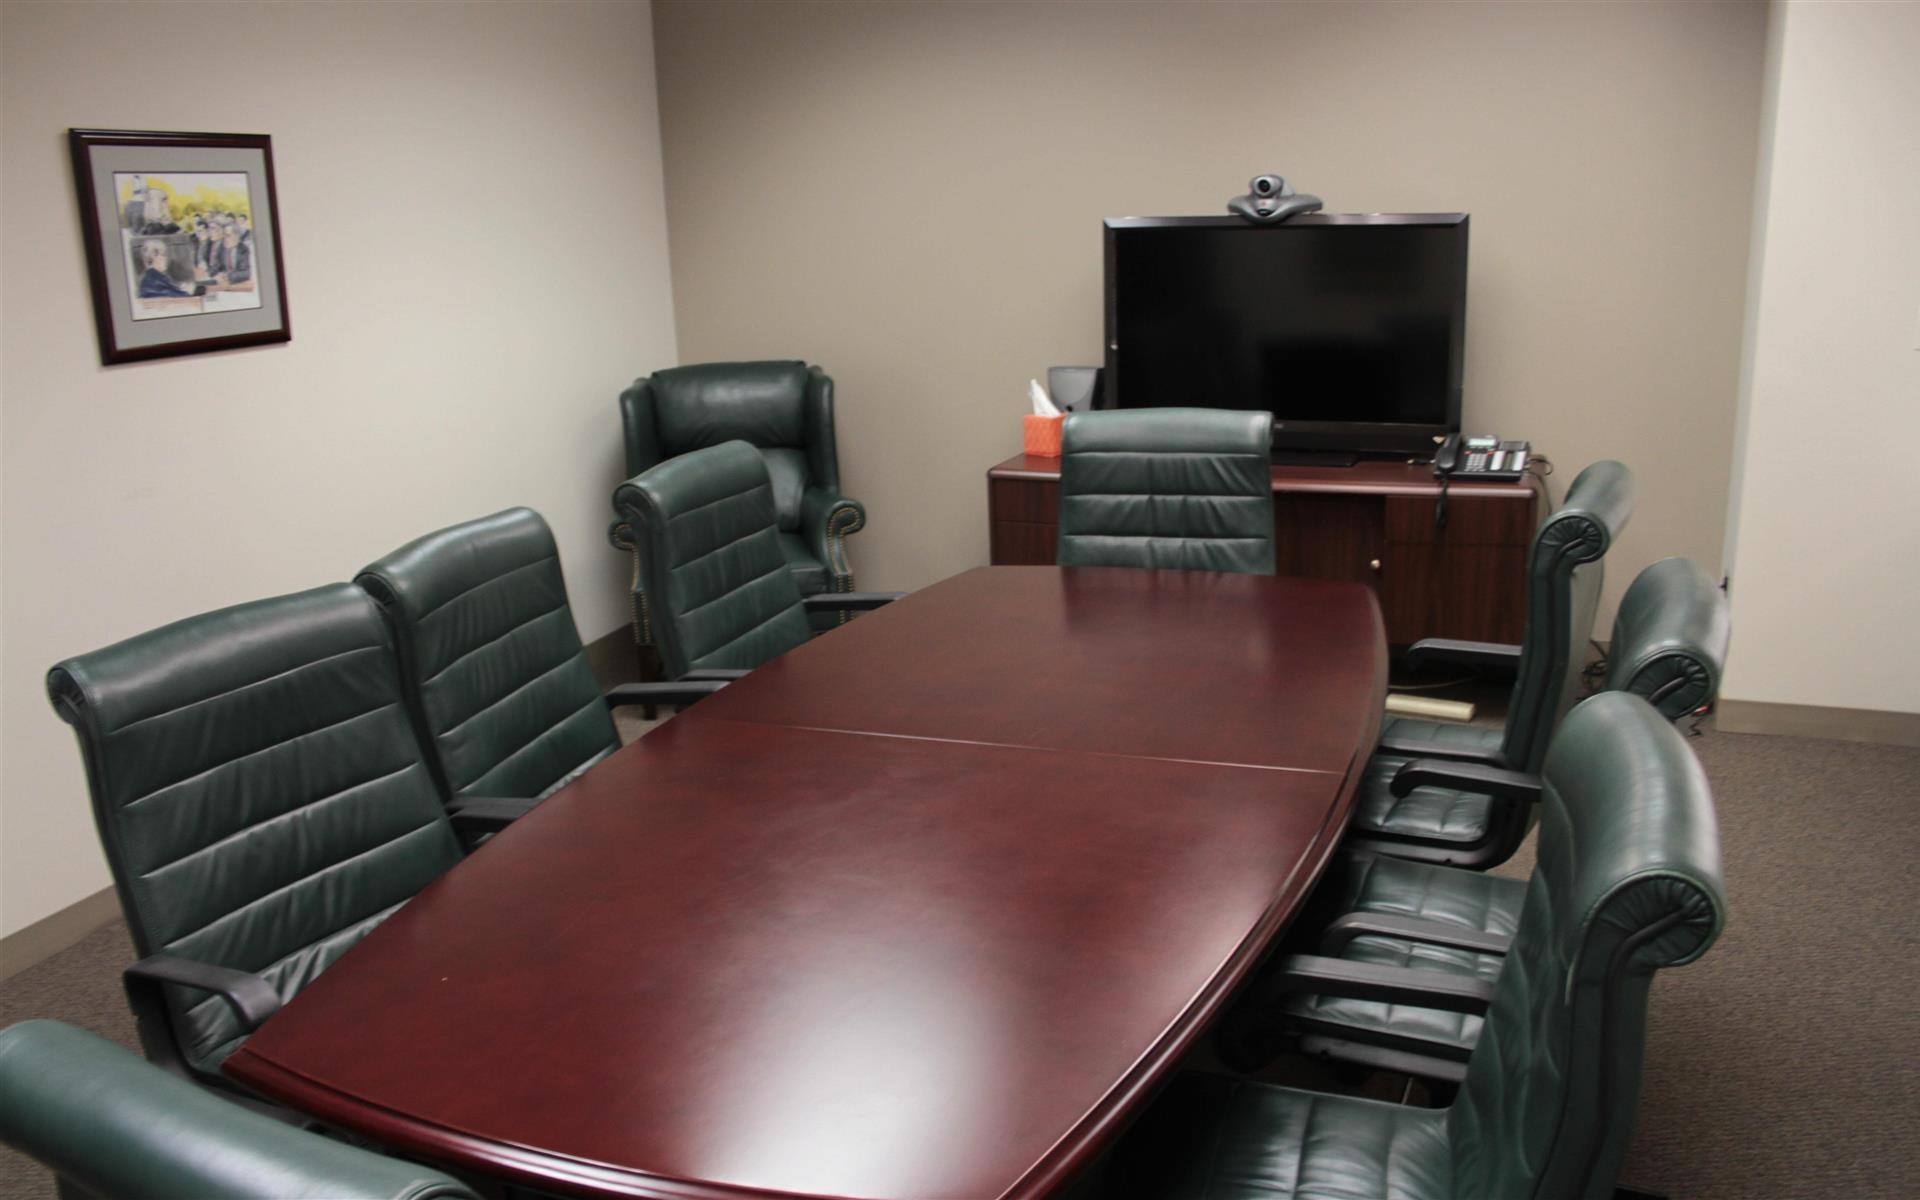 Meeting space in Chicago provided by Urlaub Bowen & Associates. We feature two Chicago meeting spaces.